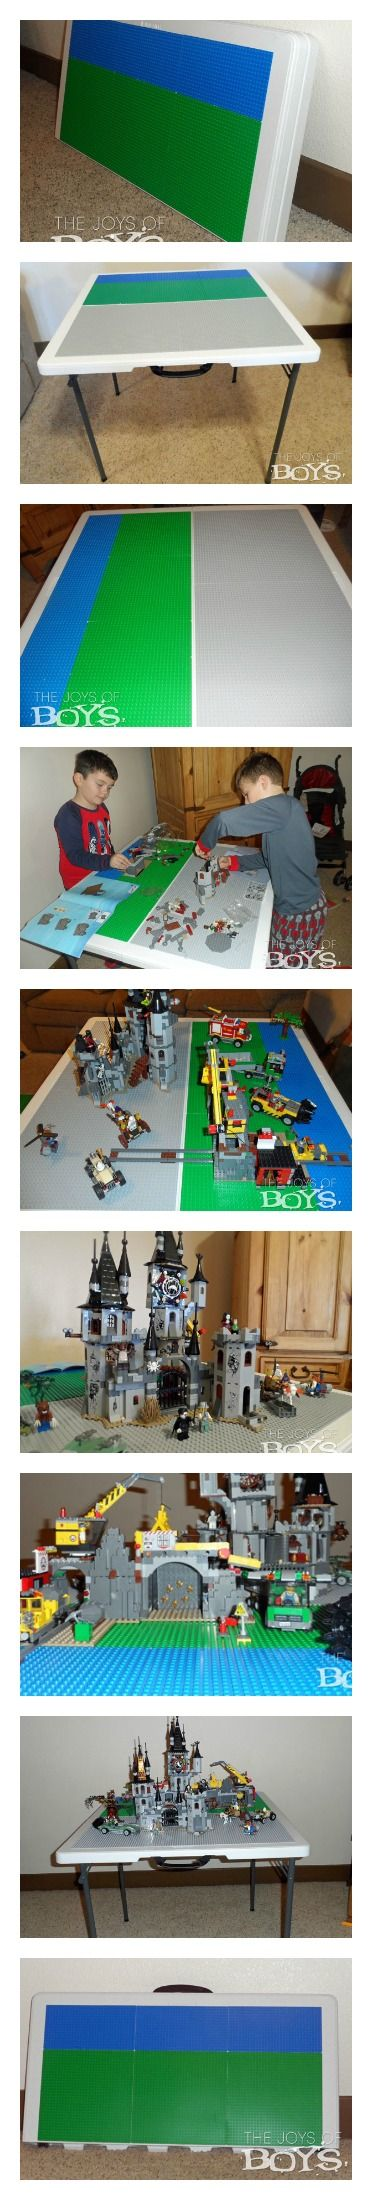 How to make your own easy storable Lego table from thejoysofboys.com.  Easy to fold and store when not being used. #Lego #activitiesforboys #gifts